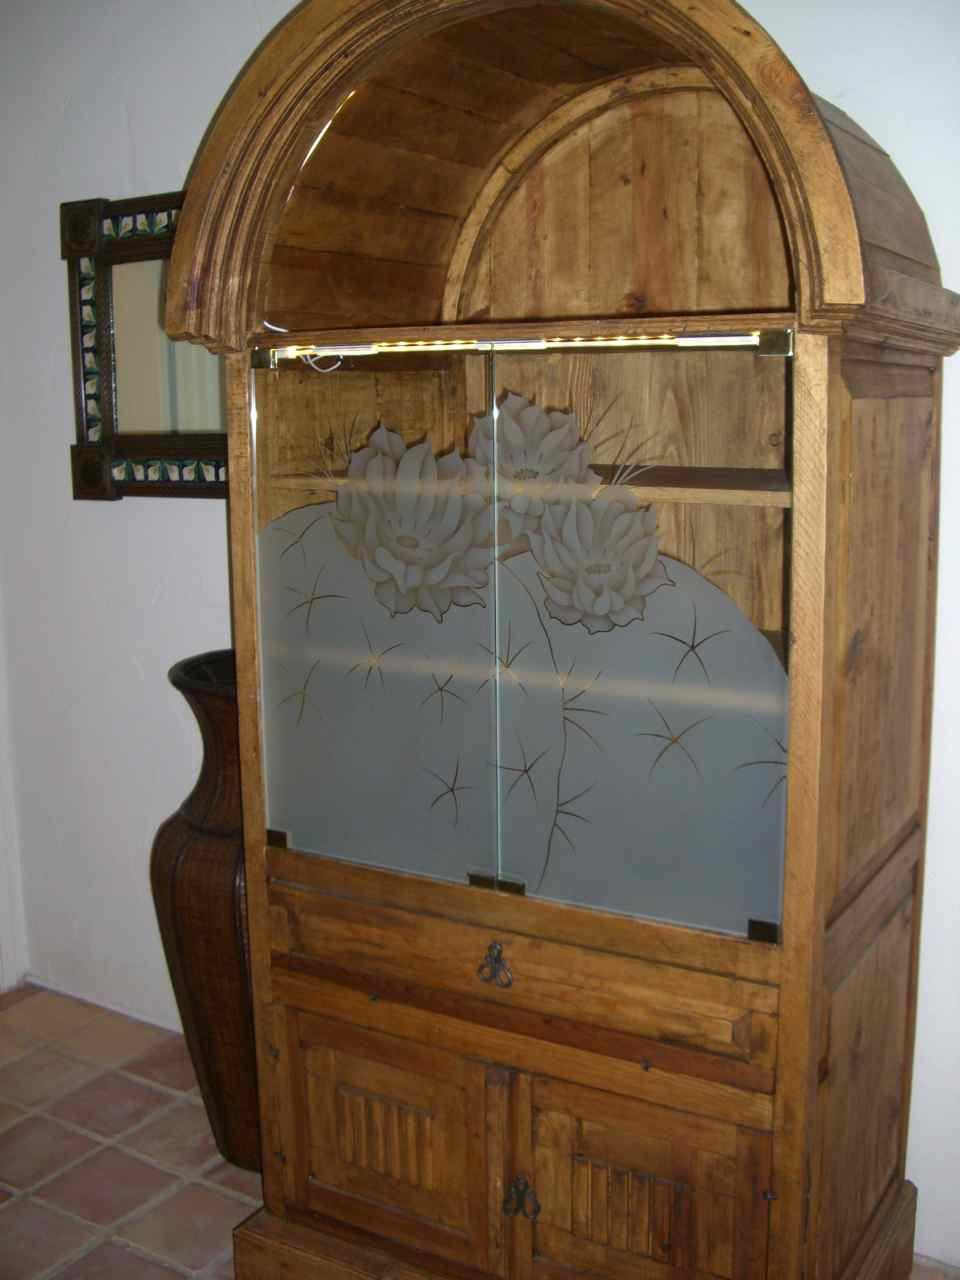 Etched glass doors privacy glass door inserts bamboo pictures to pin - Blooming Barrel Cactus Cabinet Glass